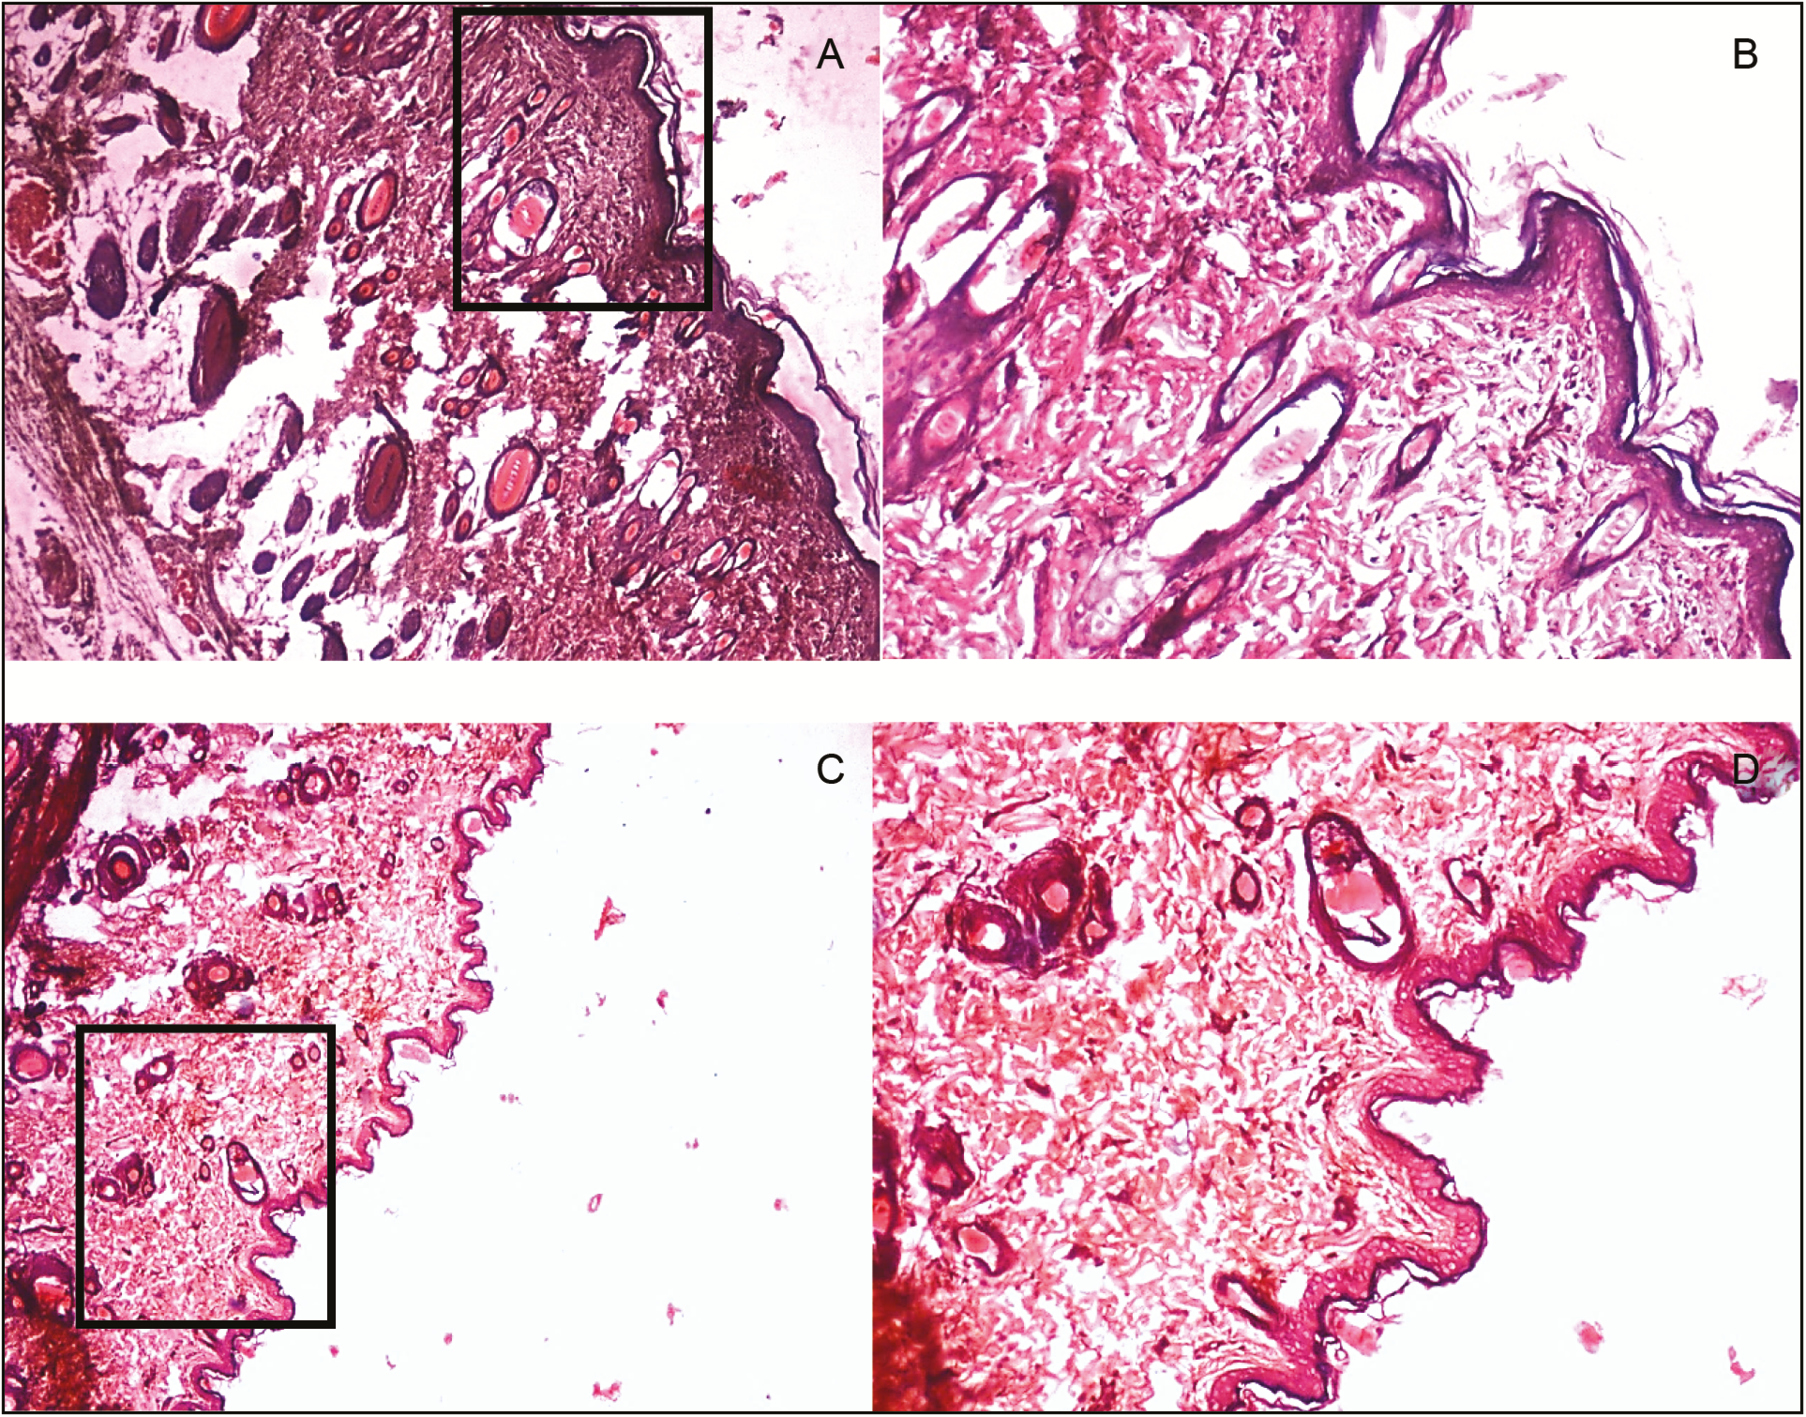 Figure 4: Histopathological slides for the manuka honey in diabetic and nondiabetic group. Figure (A) and (B) represents wound tissue specimen (wound bed) after complete healing of excision wound, stained with hematoxylin and eosin in the diabetic group (group V: manuka honey) as viewed under light microscope 4× and 10×. The sections showed well-formed keratinized squamous epithelium. The underlying dermis showed pilosebaceous units and small patches of loosely arranged collagen fibers, and rest of the area of the dermis showed normal collagen tissue. Figure (C) and (D) represents wound tissue specimen of nondiabetic group (group II: manuka honey) as viewed under light microscope 4× and 10×; the sections revealed keratinized squamous epithelium and the underlying dermis showed area of loosely arranged collagen fibers surrounding hair follicles